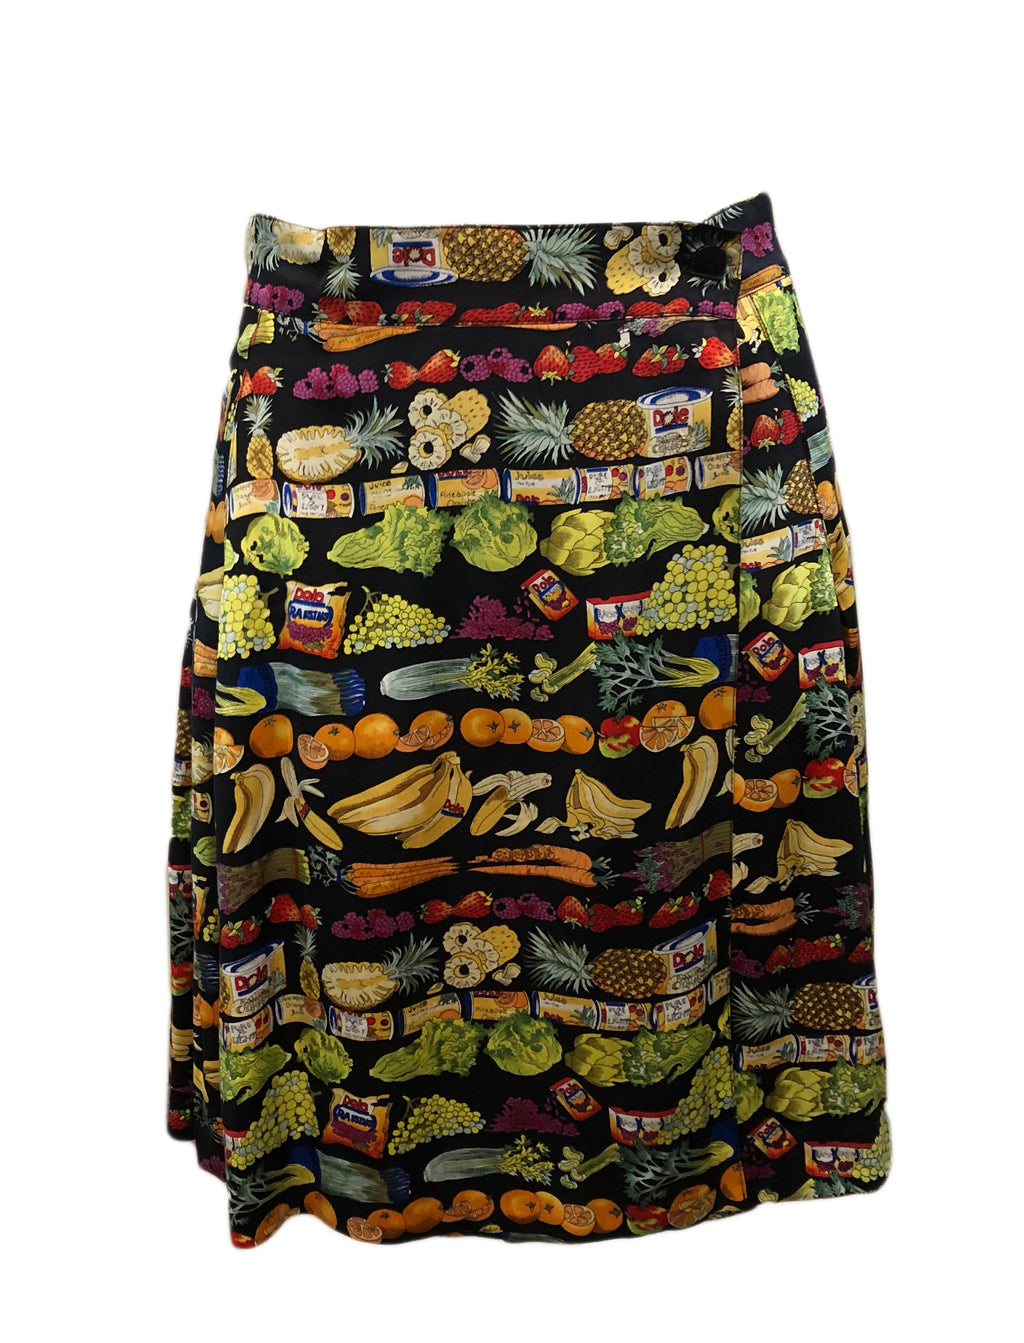 Nicole Miller  90s Silk Foodie Pleated Mini Skirt FRONT 1 of 4